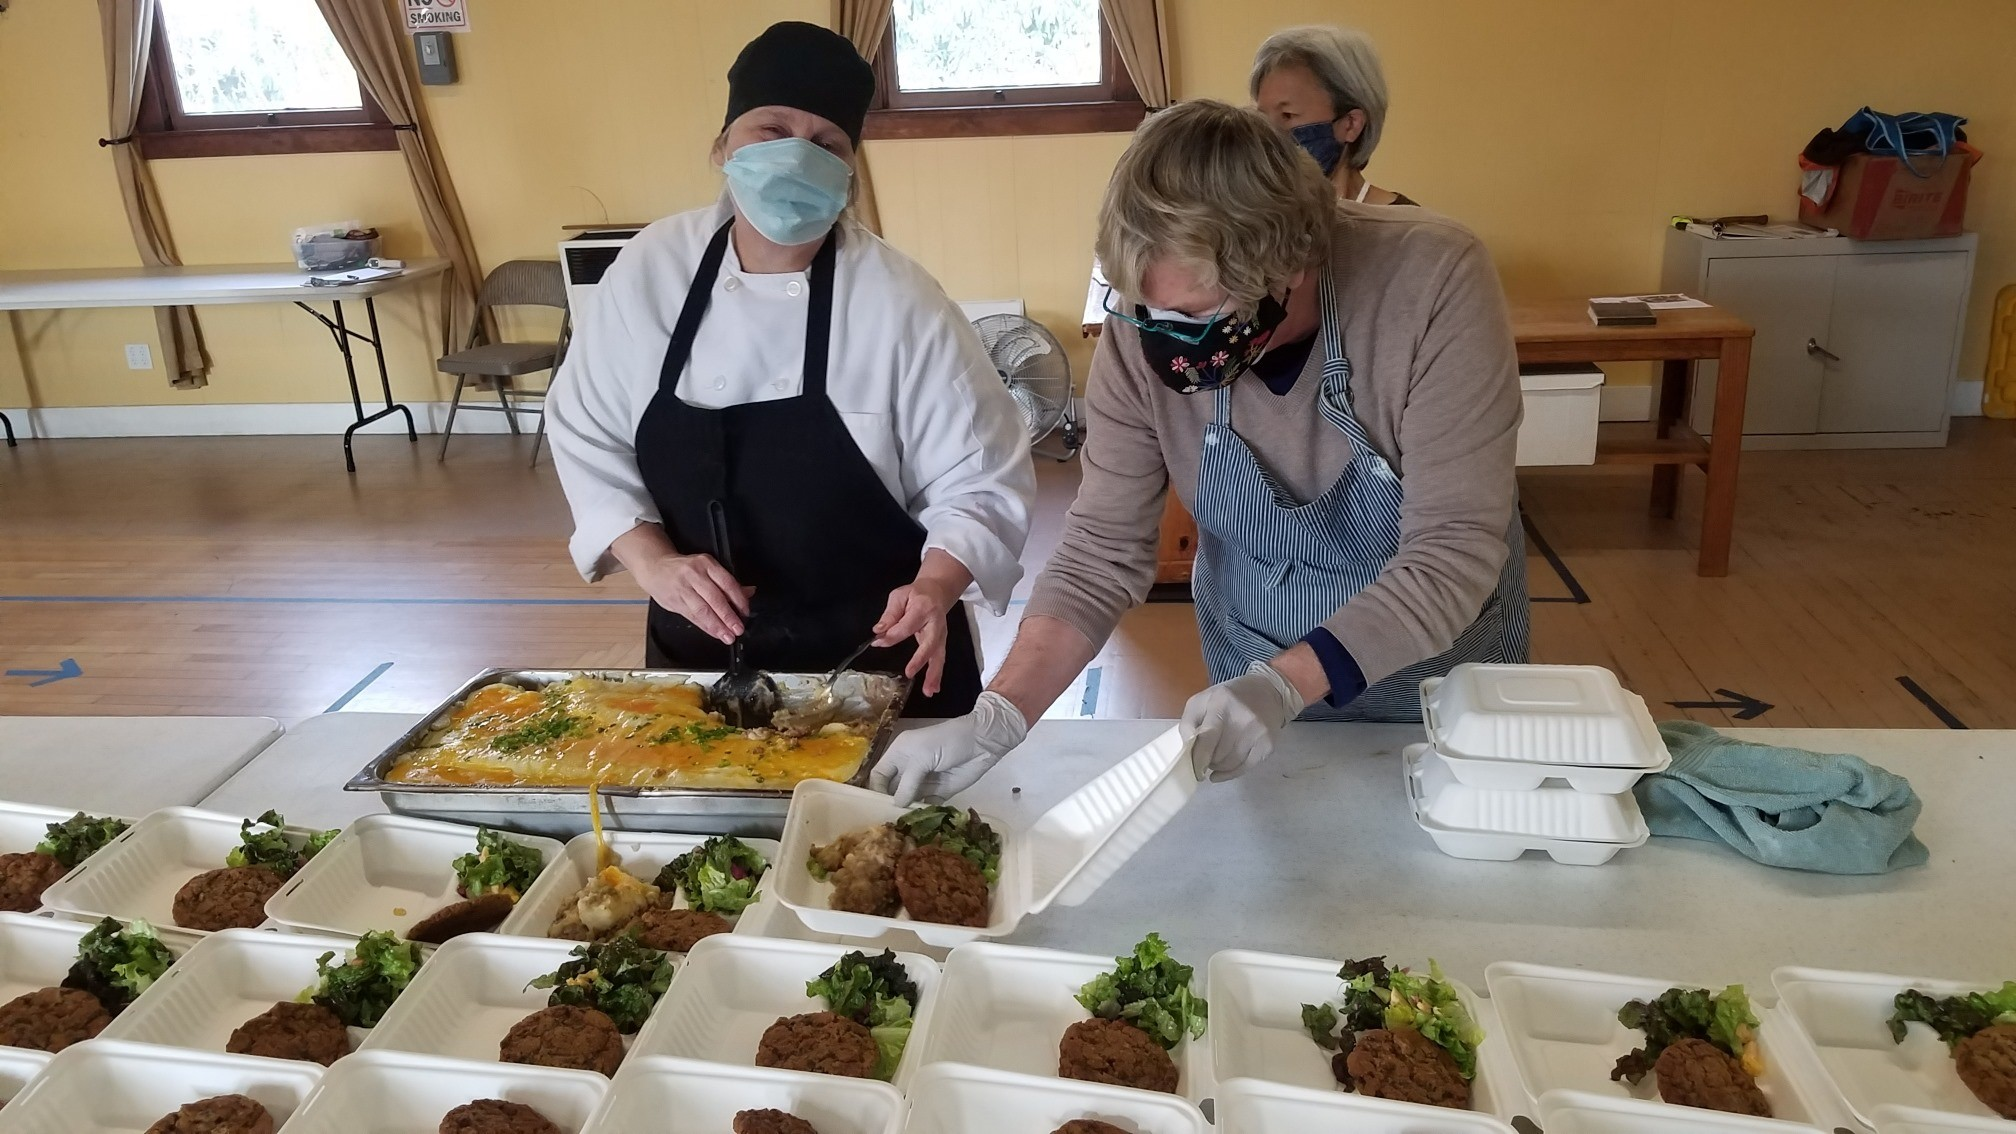 Sonoma Overnight Support received a grant for refrigeration units and worktables. The photo is them serving food at the Springs Hall